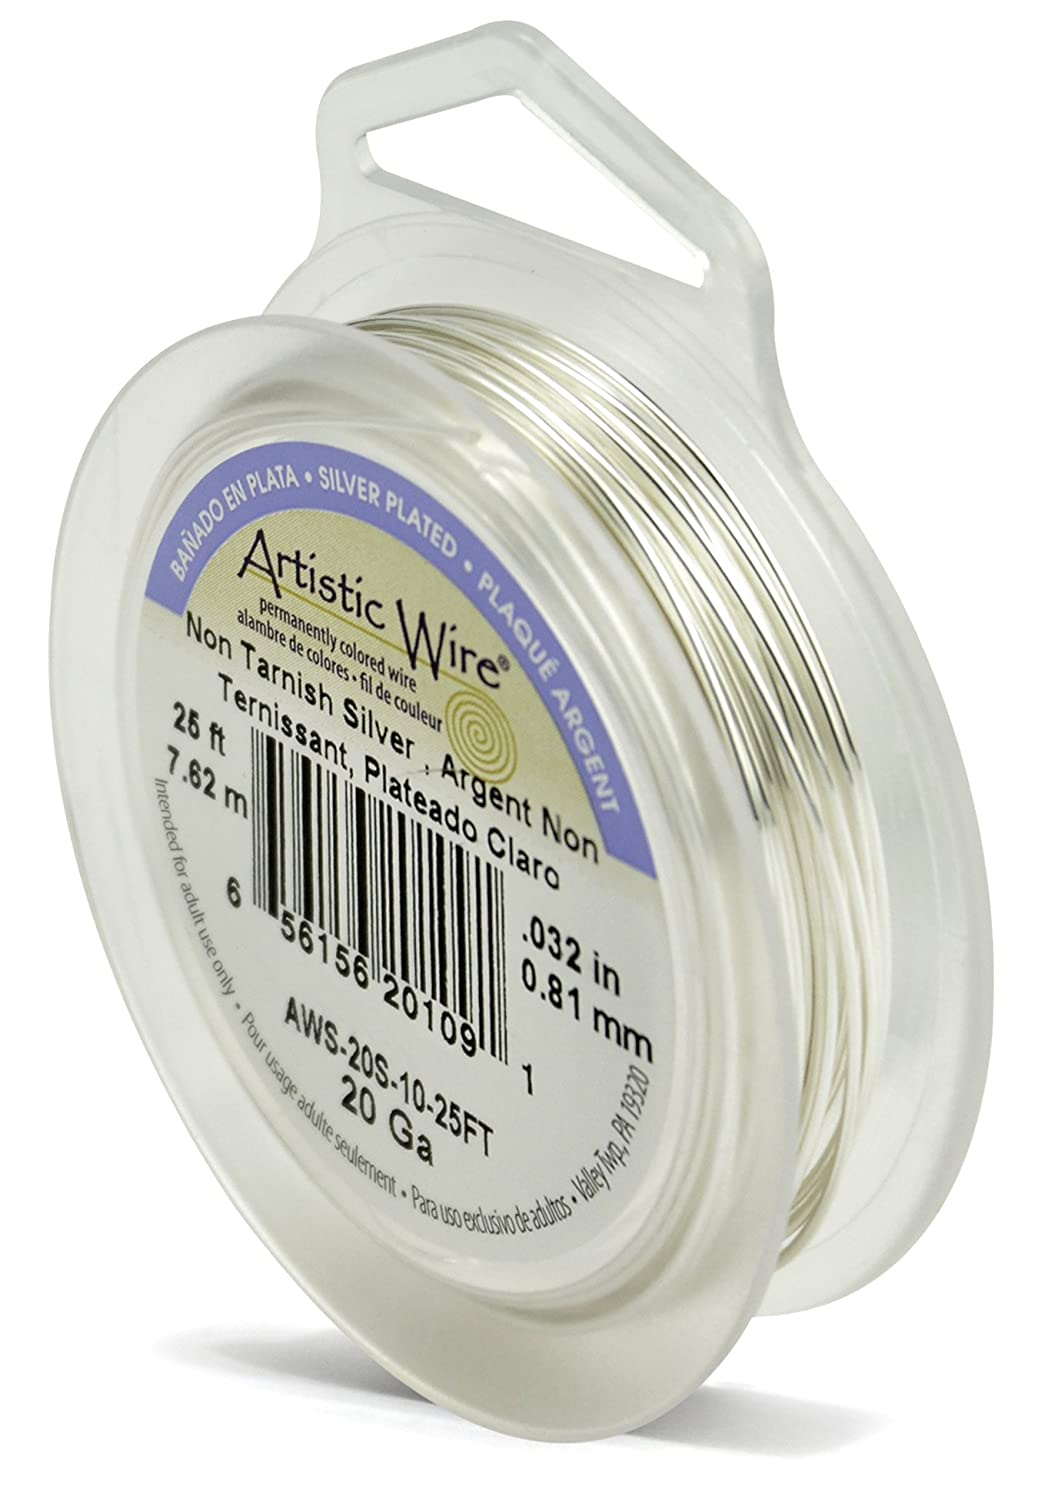 Amazon.com: Artistic Wire 20-Gauge Tarnish Resistant Silver Coil ...